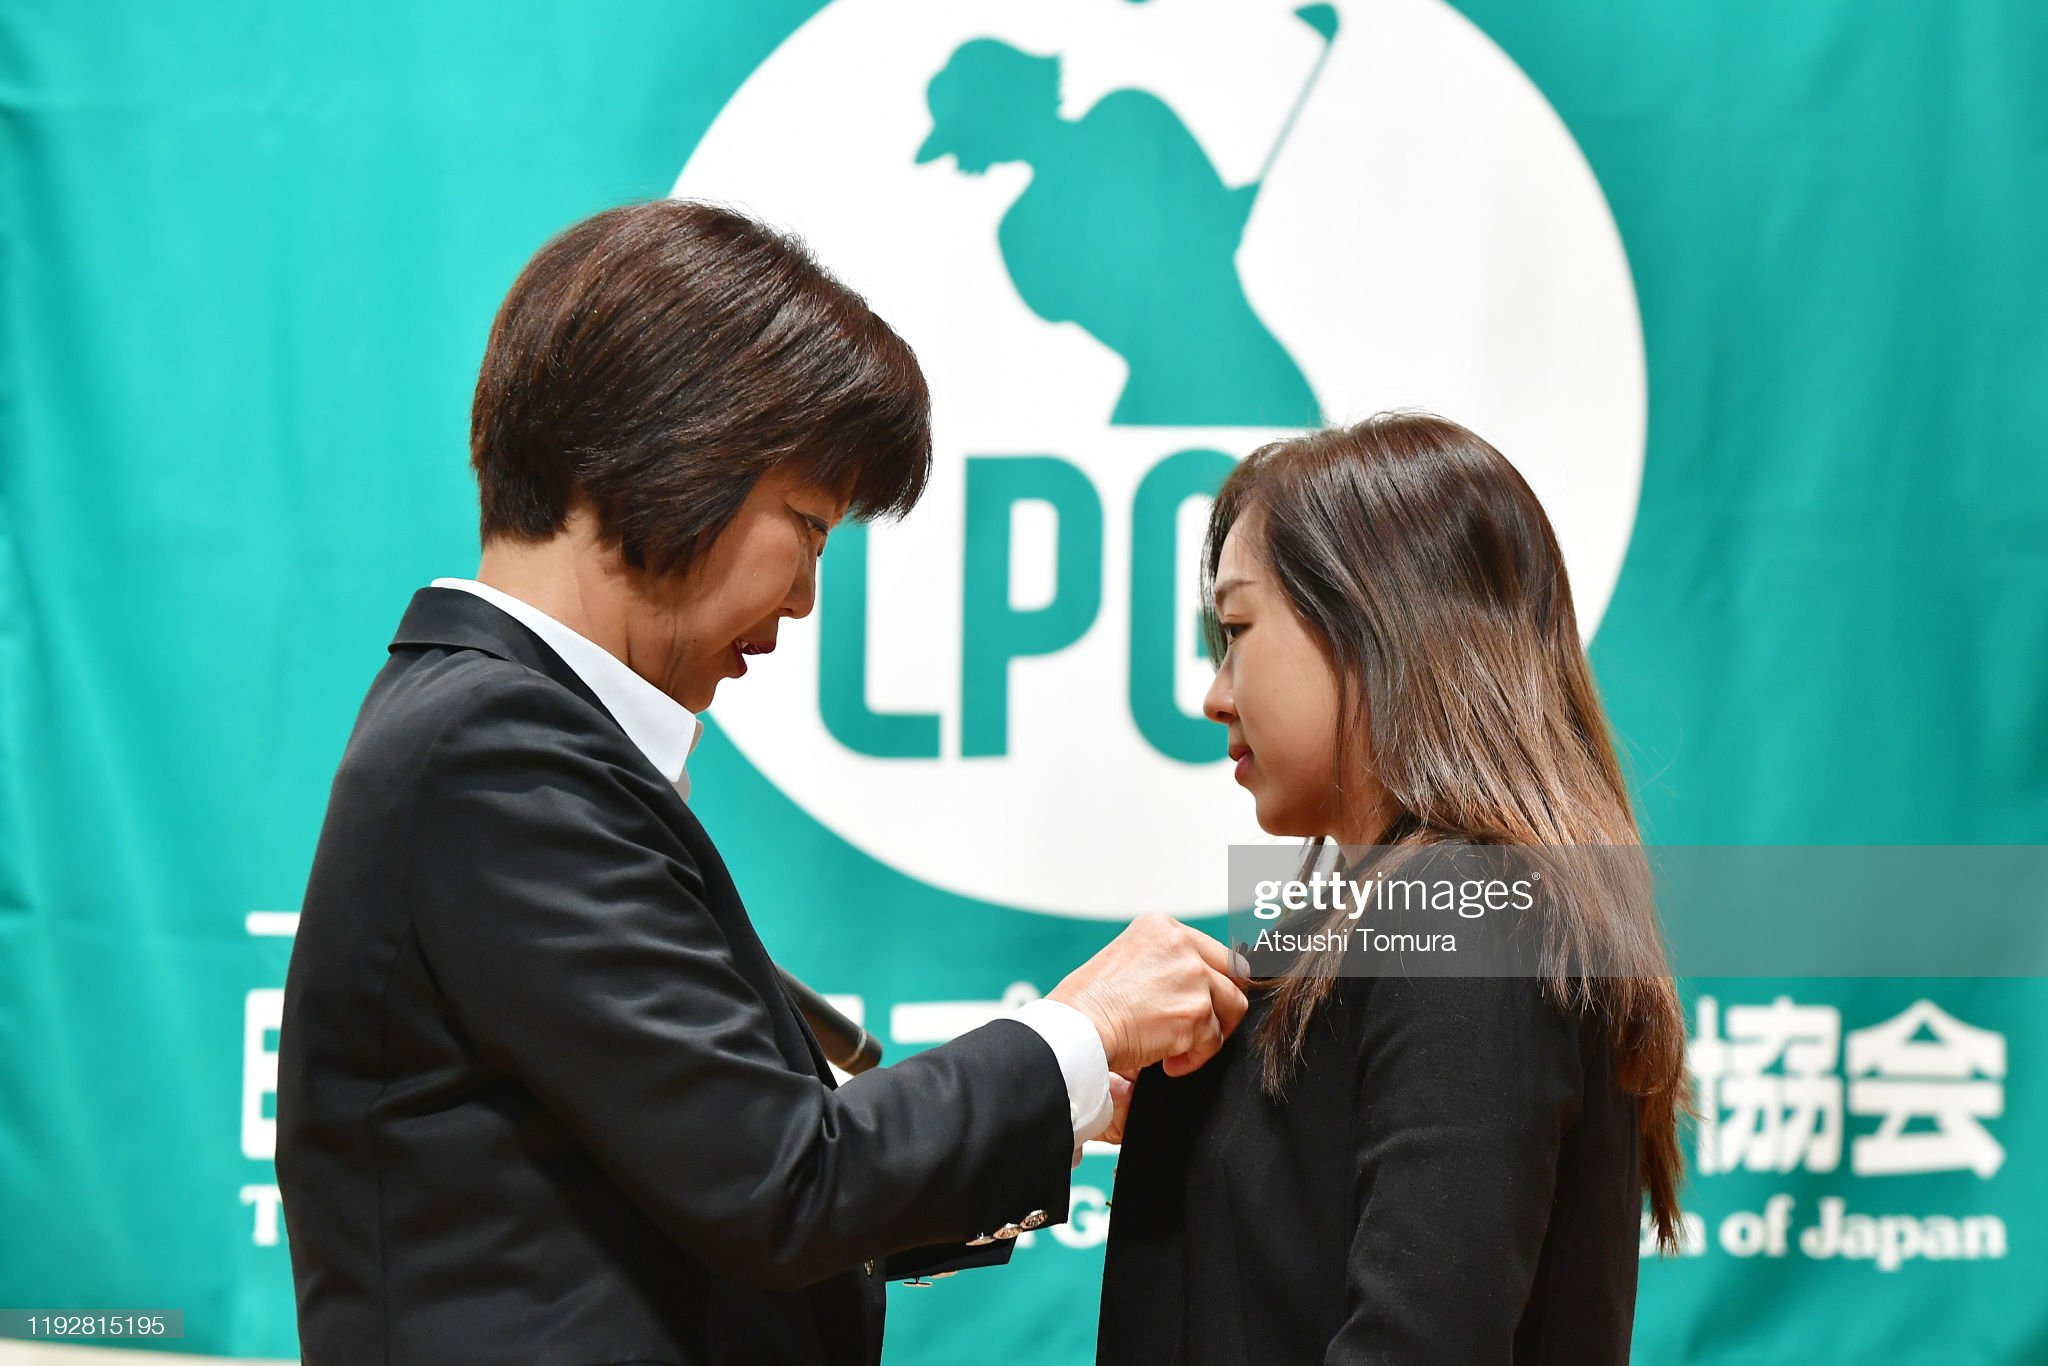 https://media.gettyimages.com/photos/solar-lee-of-south-korea-with-japanese-lpga-president-hiromi-of-picture-id1192815195?s=2048x2048